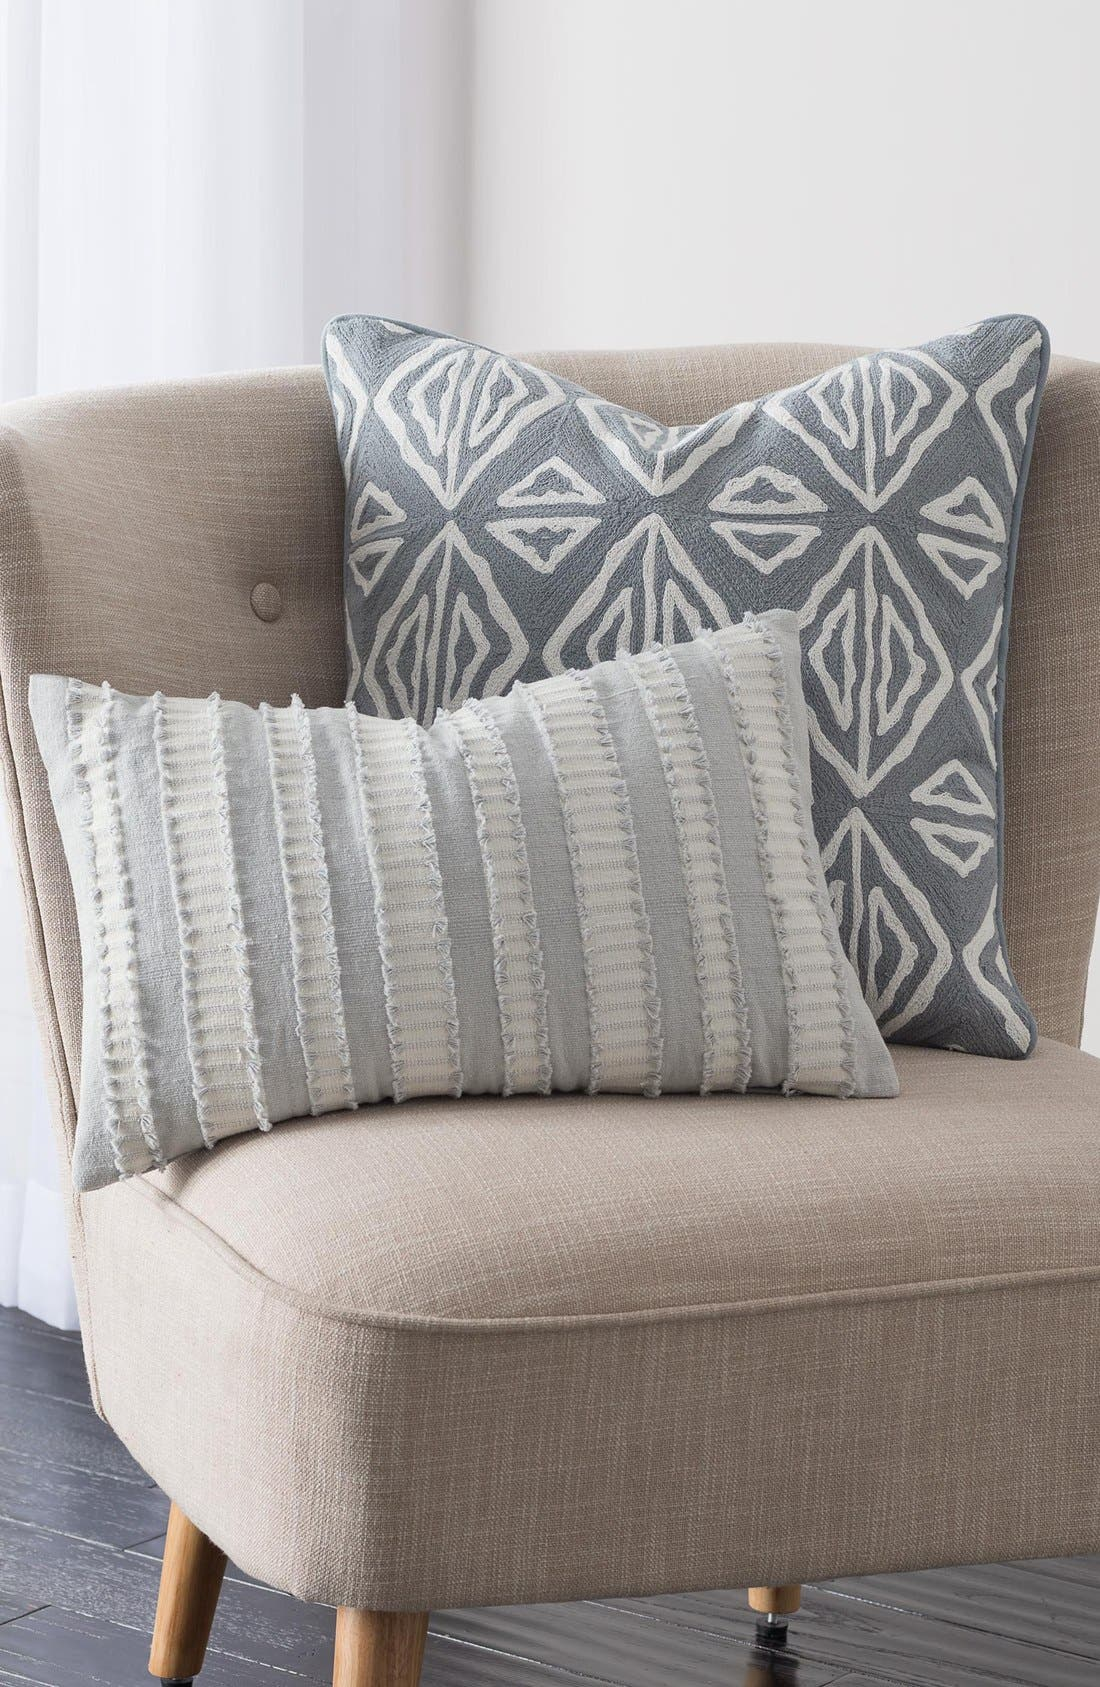 'Moroccan Geo' Crewel Embroidered Pillow,                             Alternate thumbnail 3, color,                             020